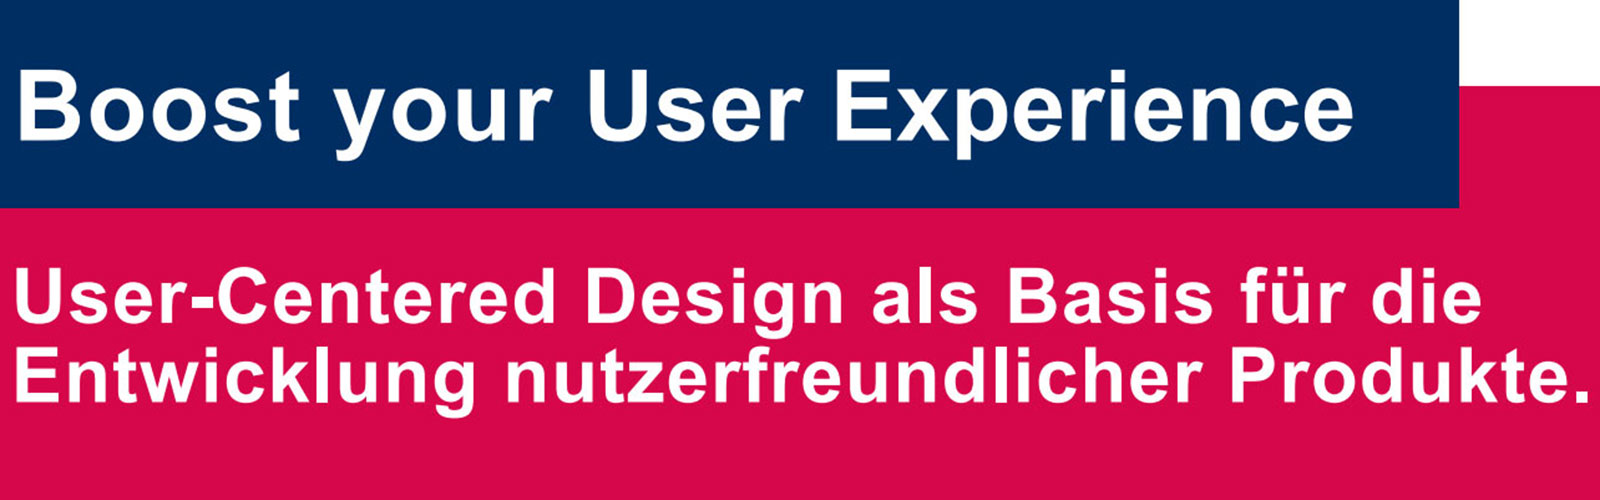 Boost your User Experience @ online